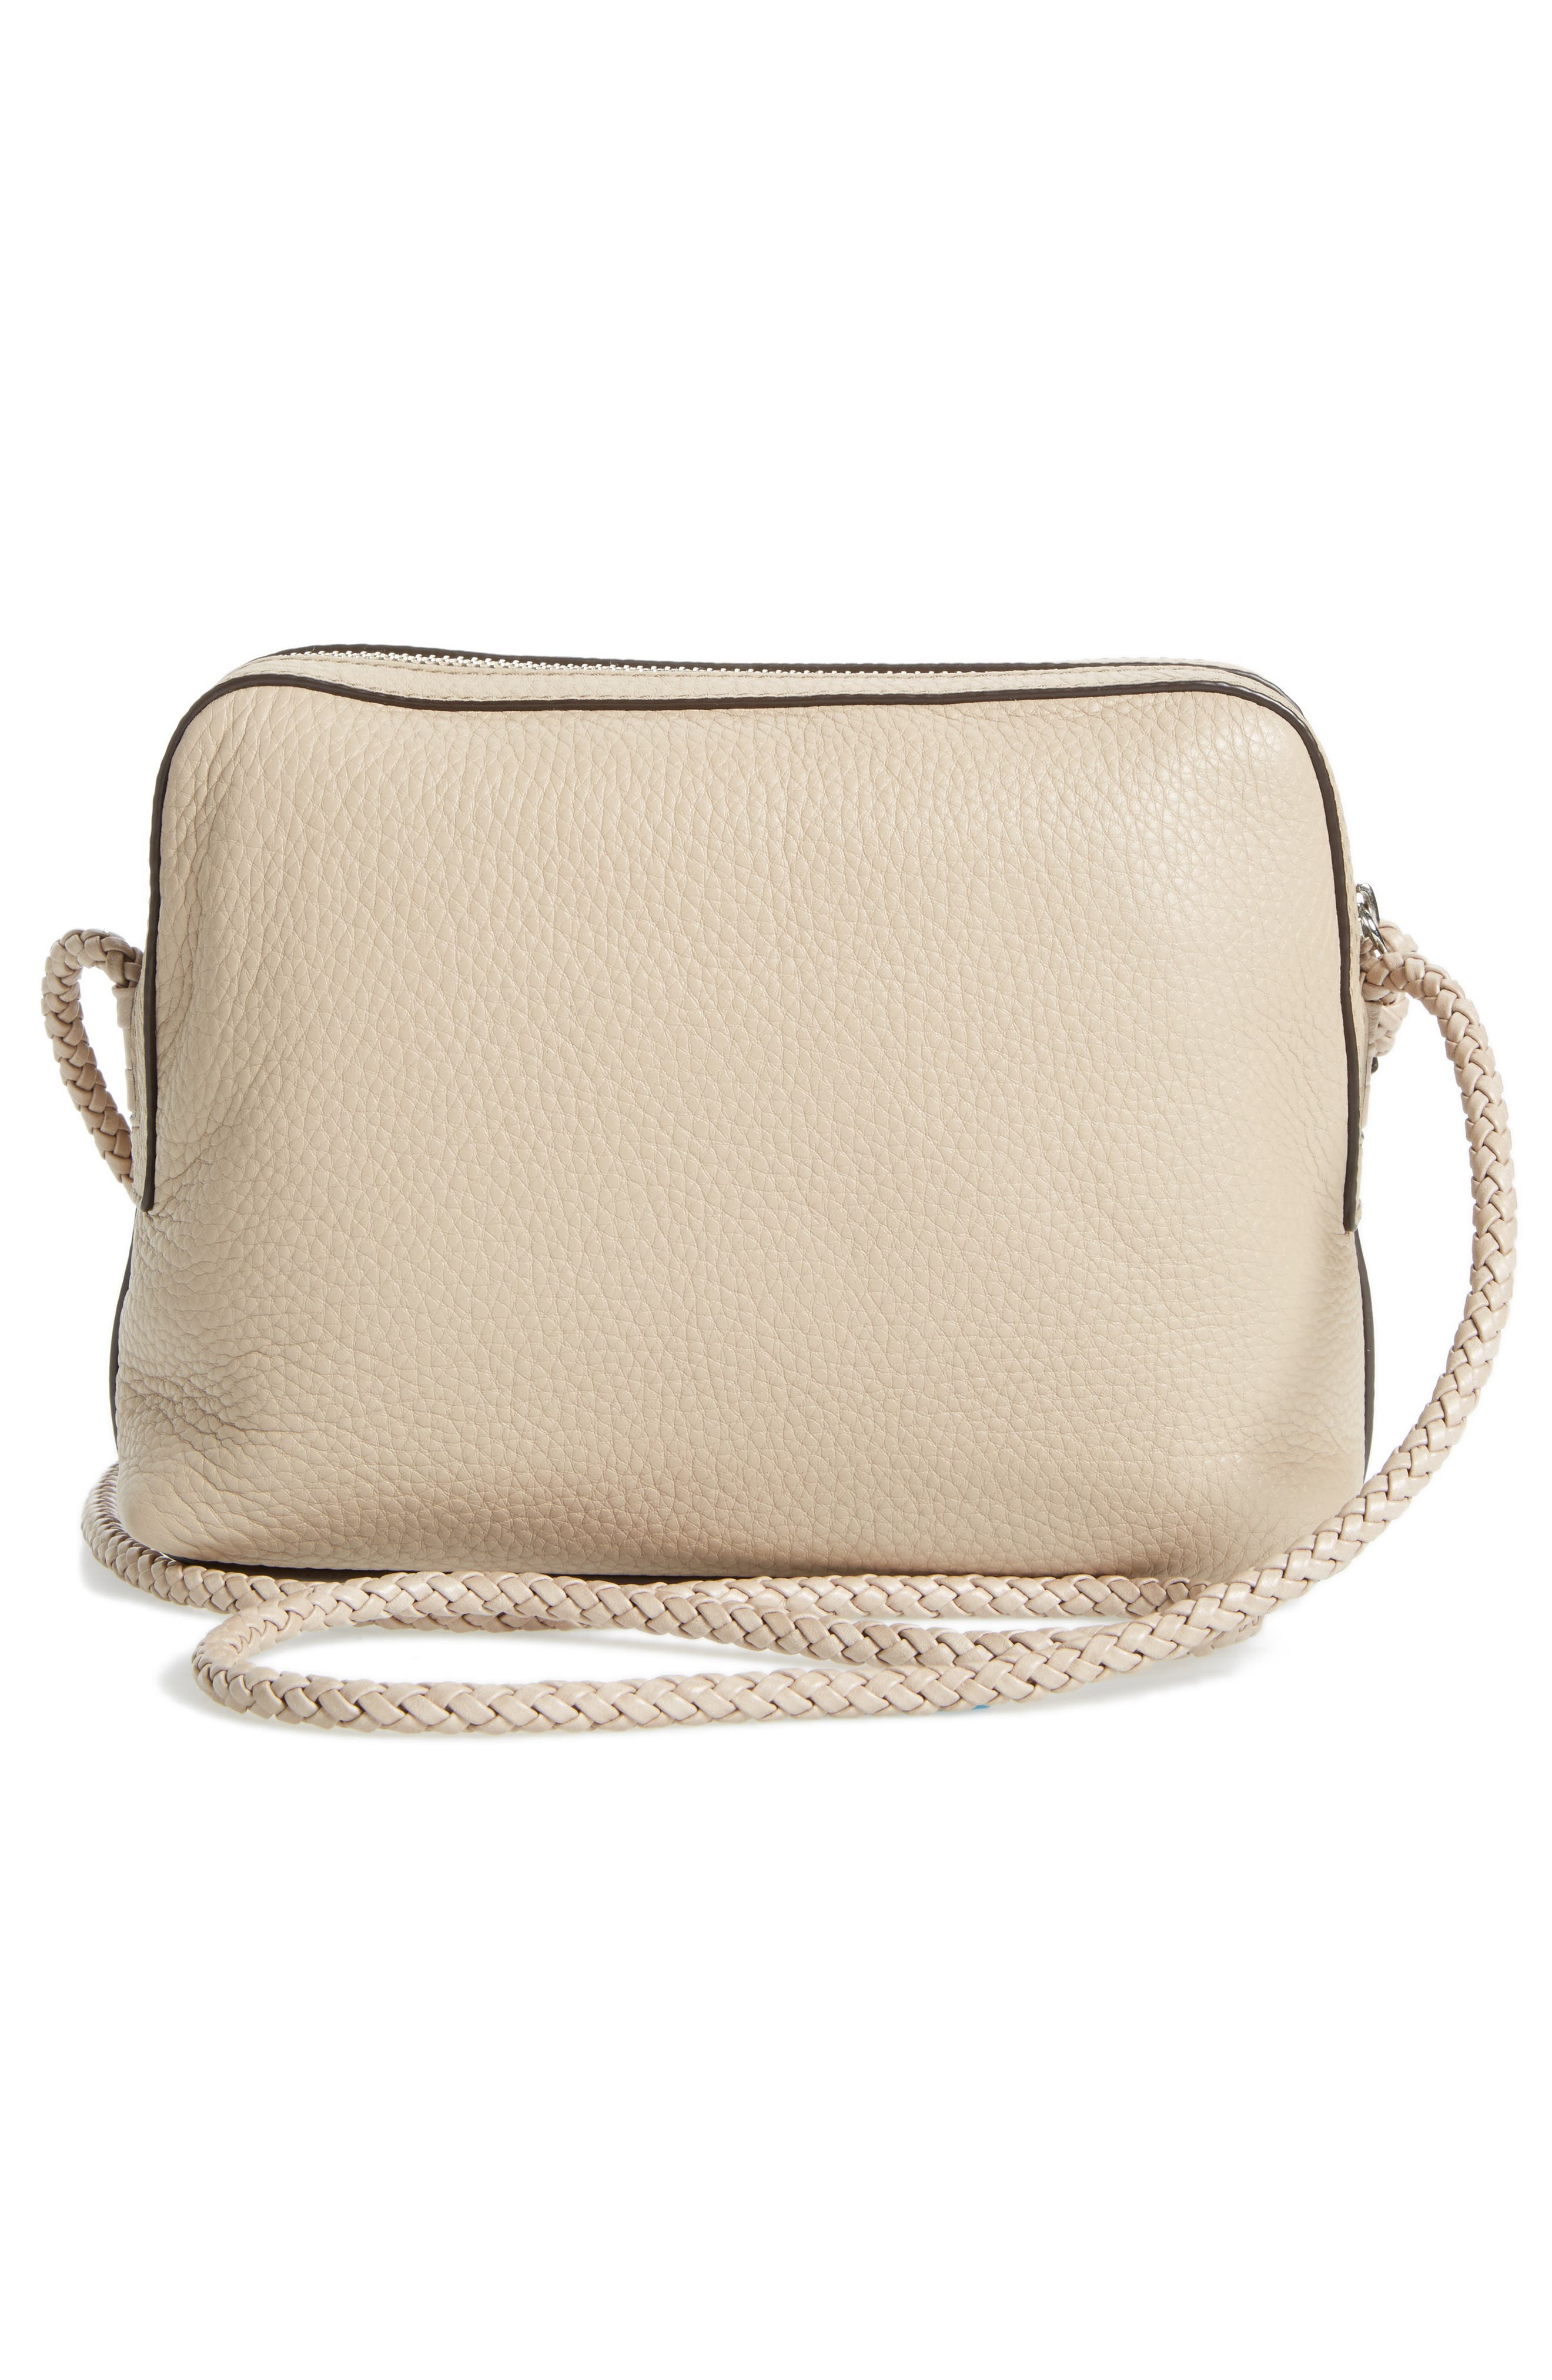 Alternate Image 3  - Tory Burch Taylor Leather Camera Bag